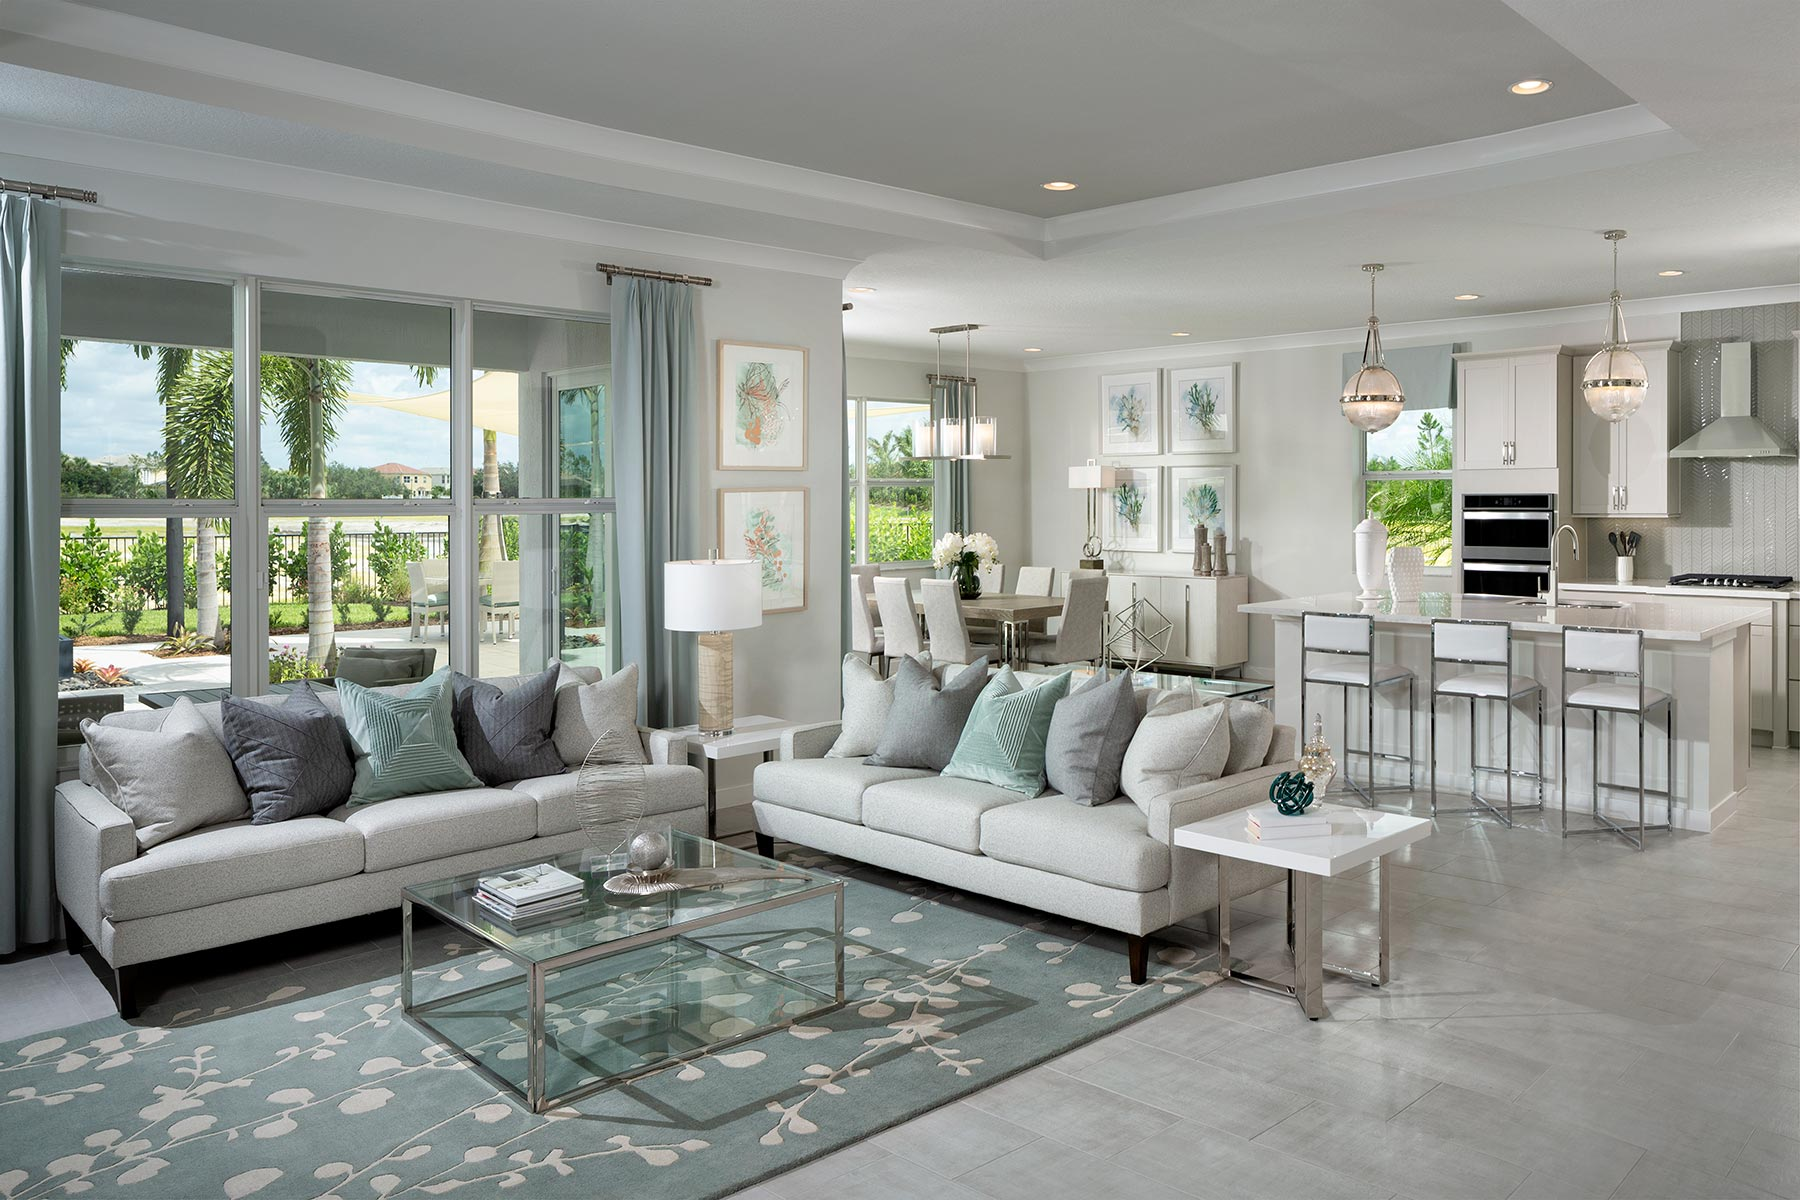 Tradition - Manderlie Greatroom in Port St. Lucie Florida by Mattamy Homes